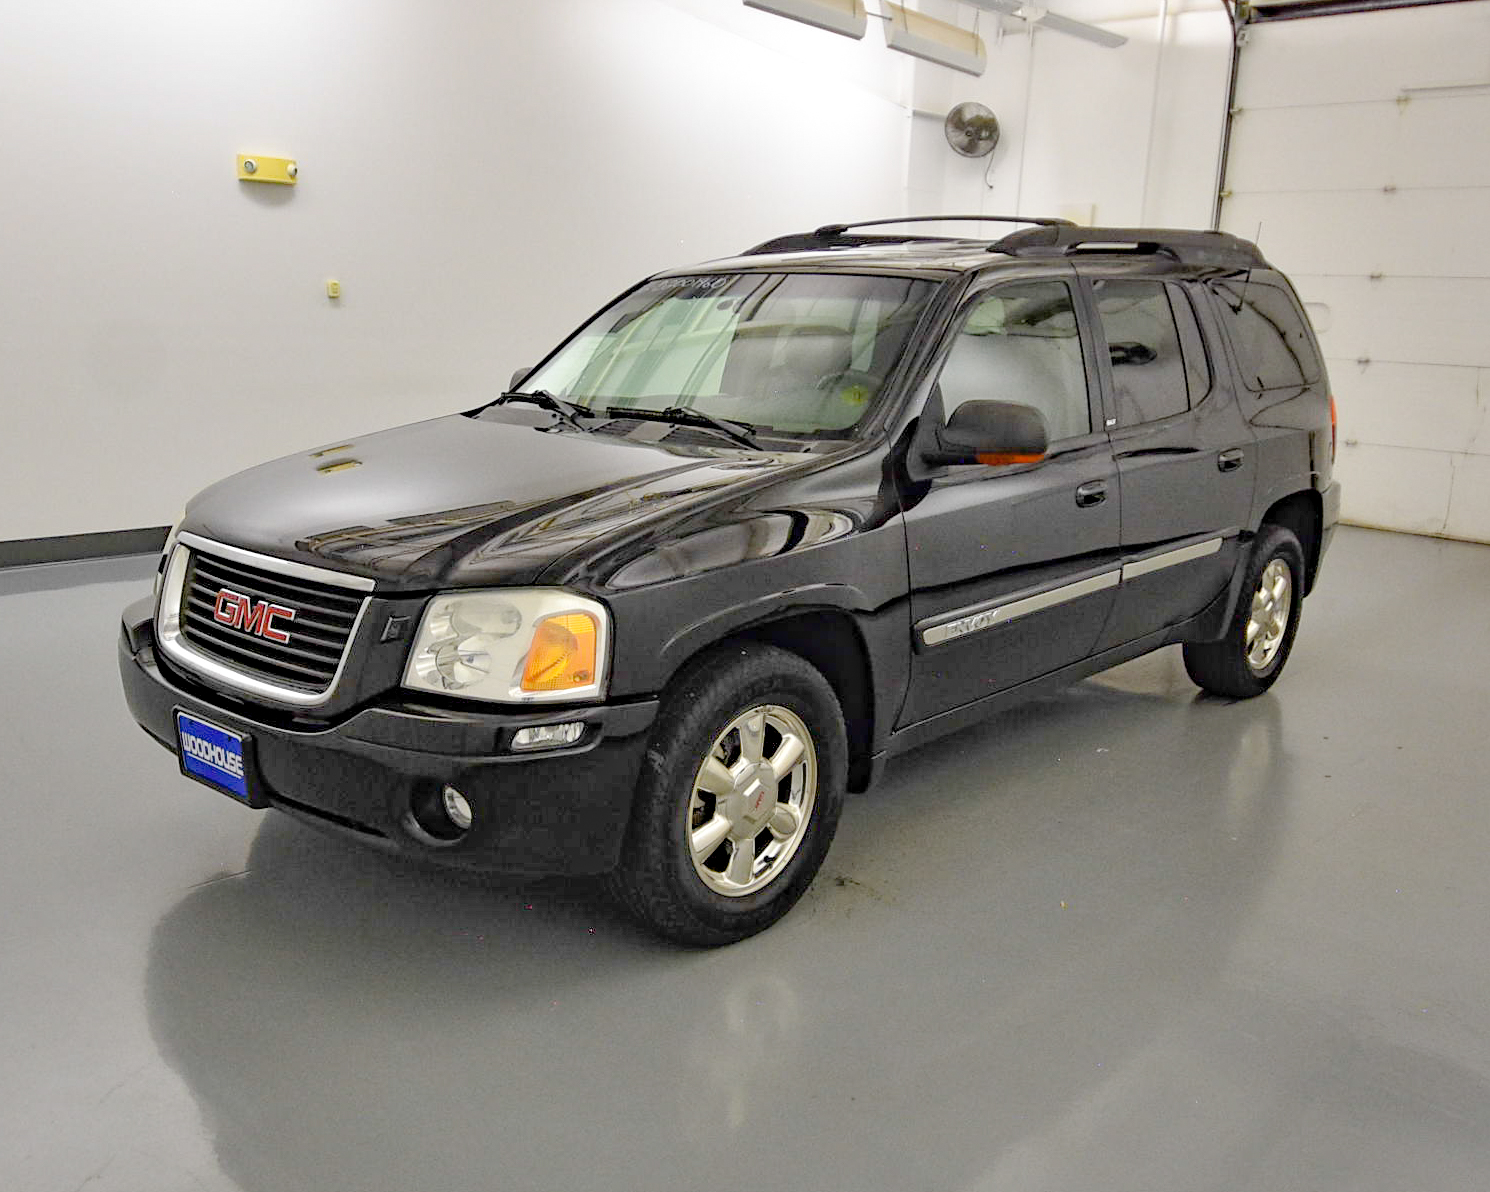 woodhouse used 2002 gmc envoy xl for sale ford blair woodhouse used 2002 gmc envoy xl for